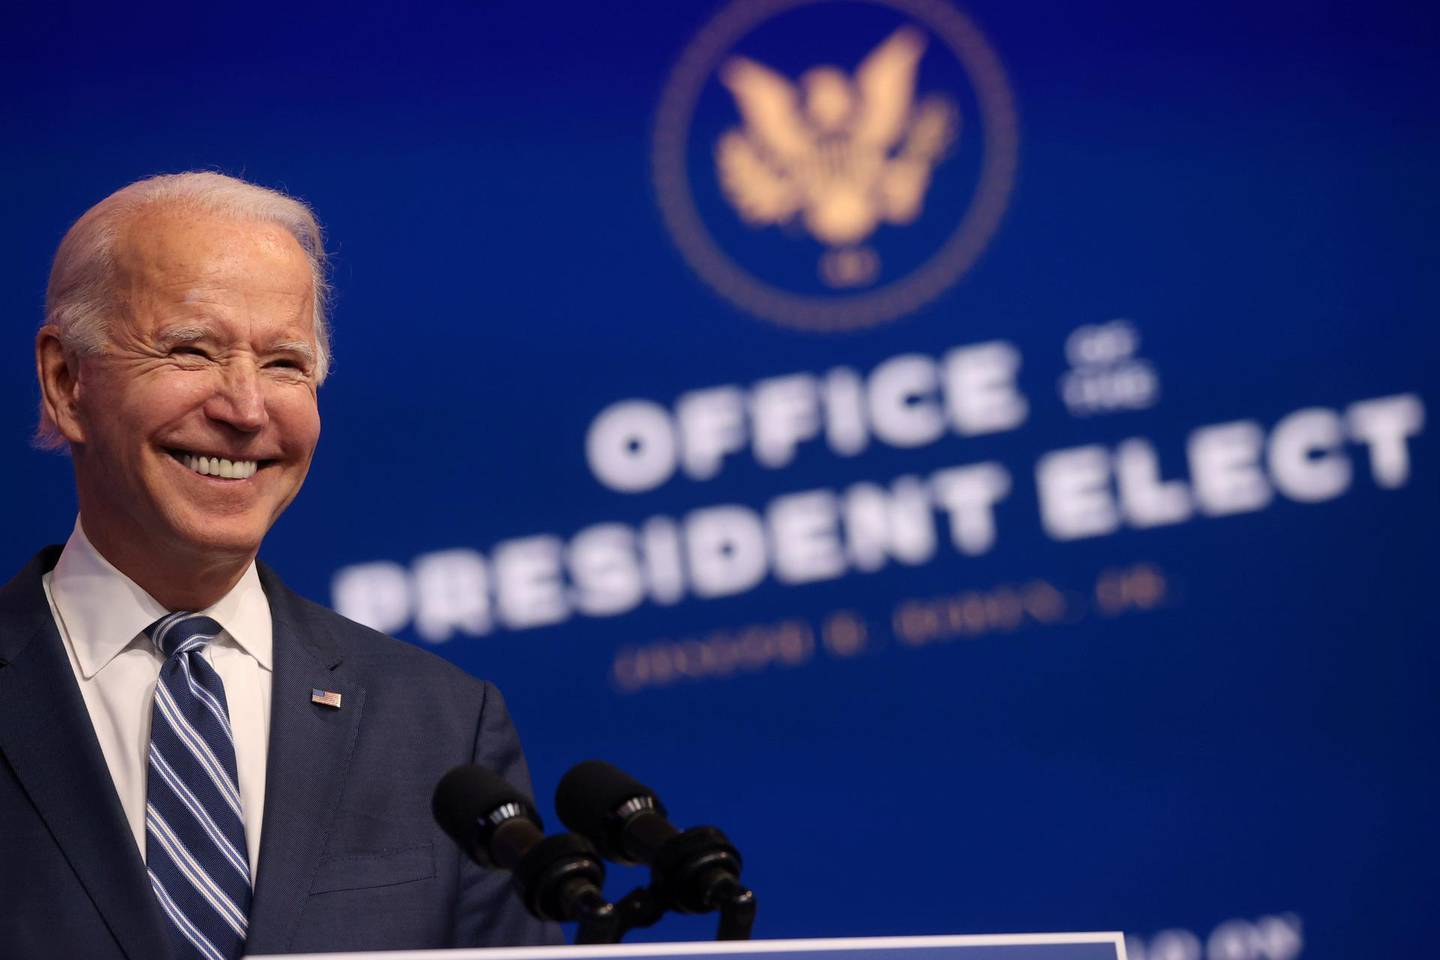 U.S. President-elect Joe Biden smiles as he speaks about health care and the Affordable Care Act (Obamacare) at the theater serving as his transition headquarters in Wilmington, Delaware, U.S., November 10, 2020. REUTERS/Jonathan Ernst